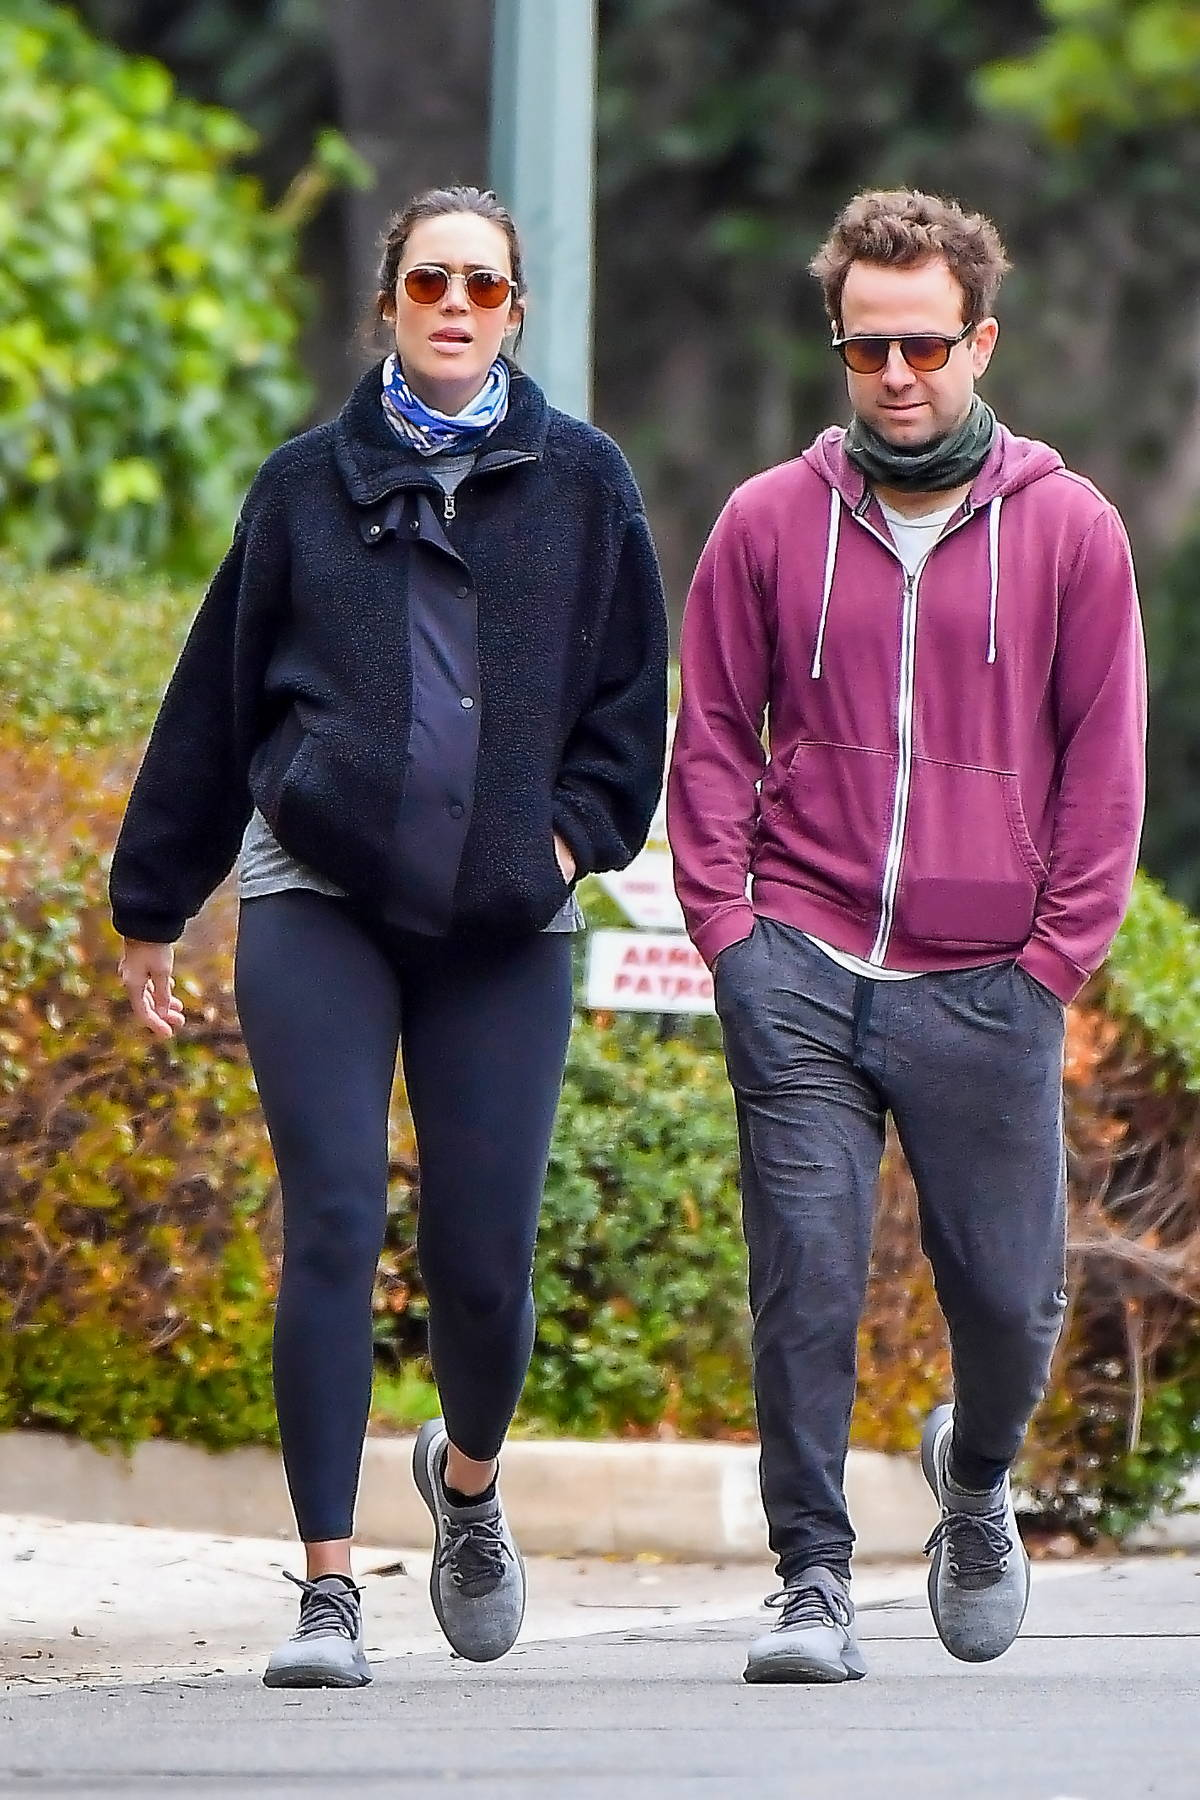 Mandy Moore and Taylor Goldsmith step out on for a stroll around their neighborhood in Pasadena, California